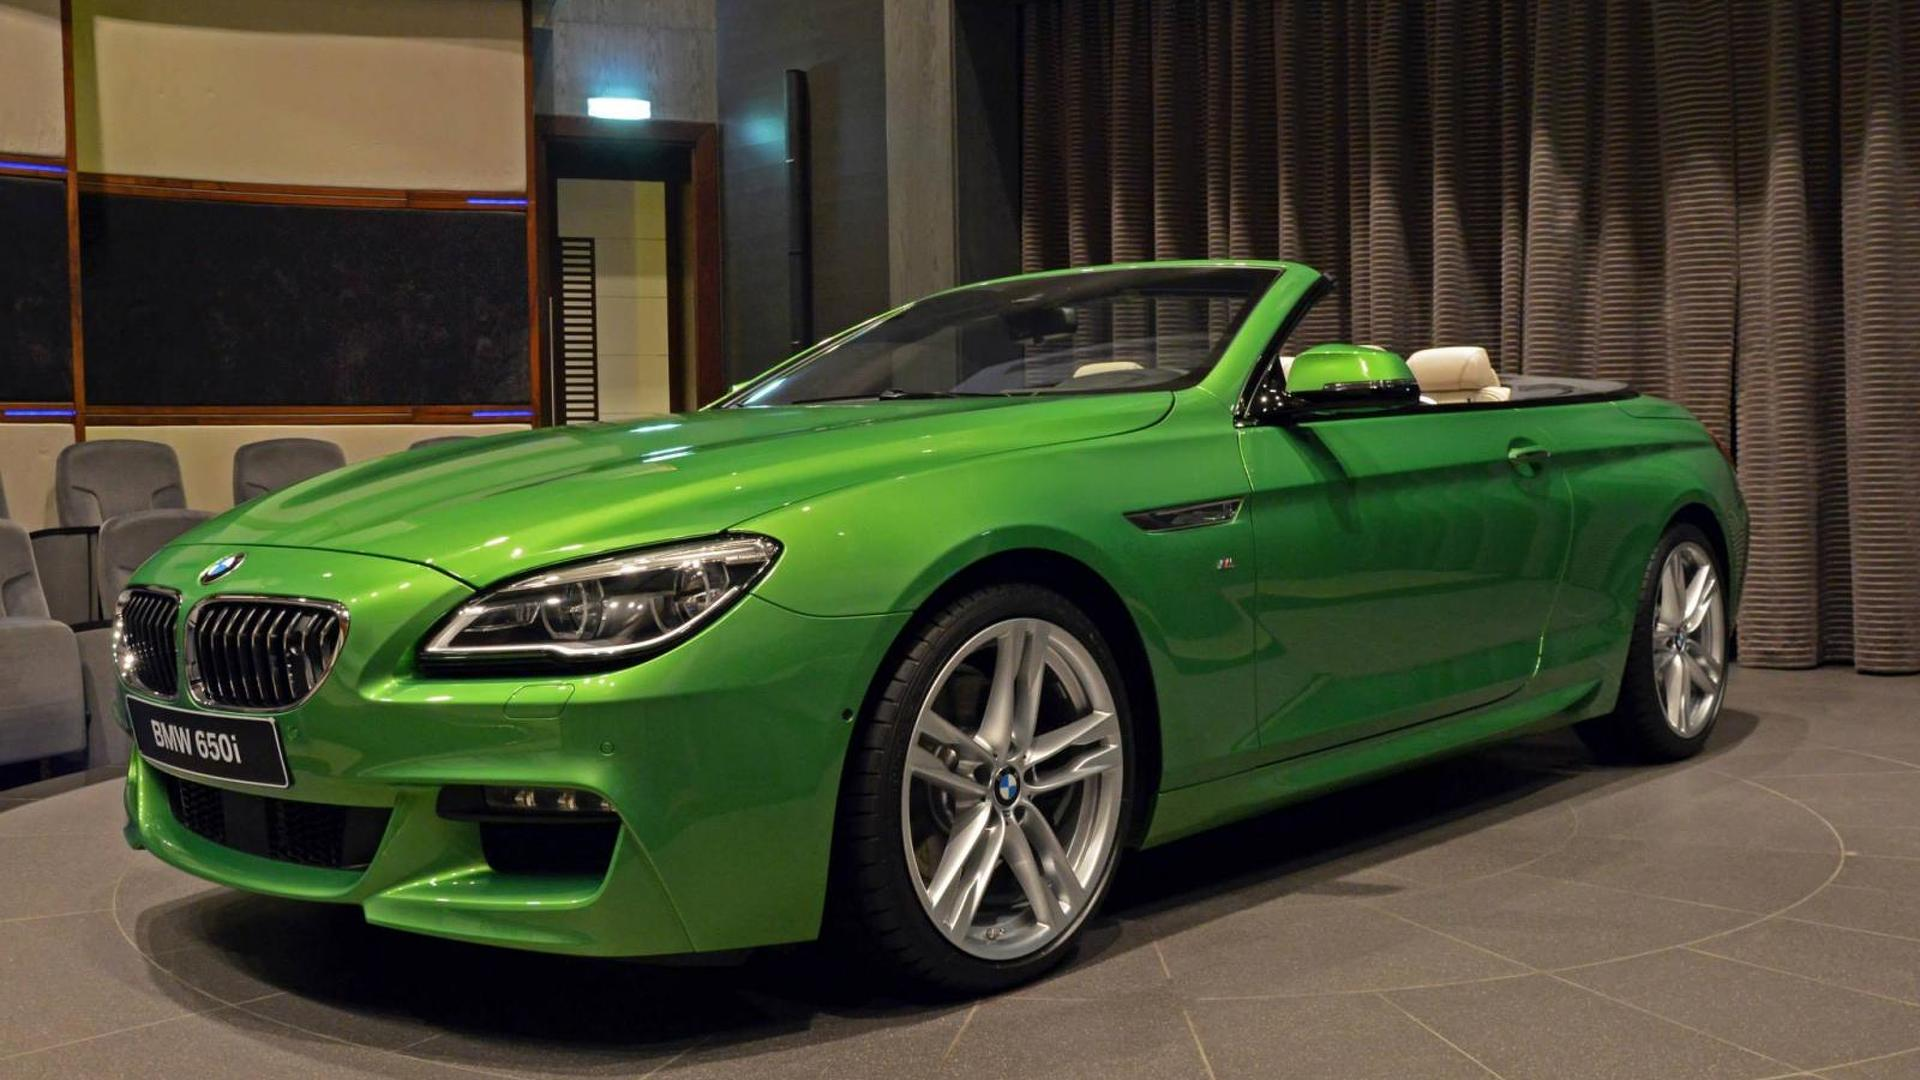 BMW Abu Dhabi showcases Java Green 650i Convertible